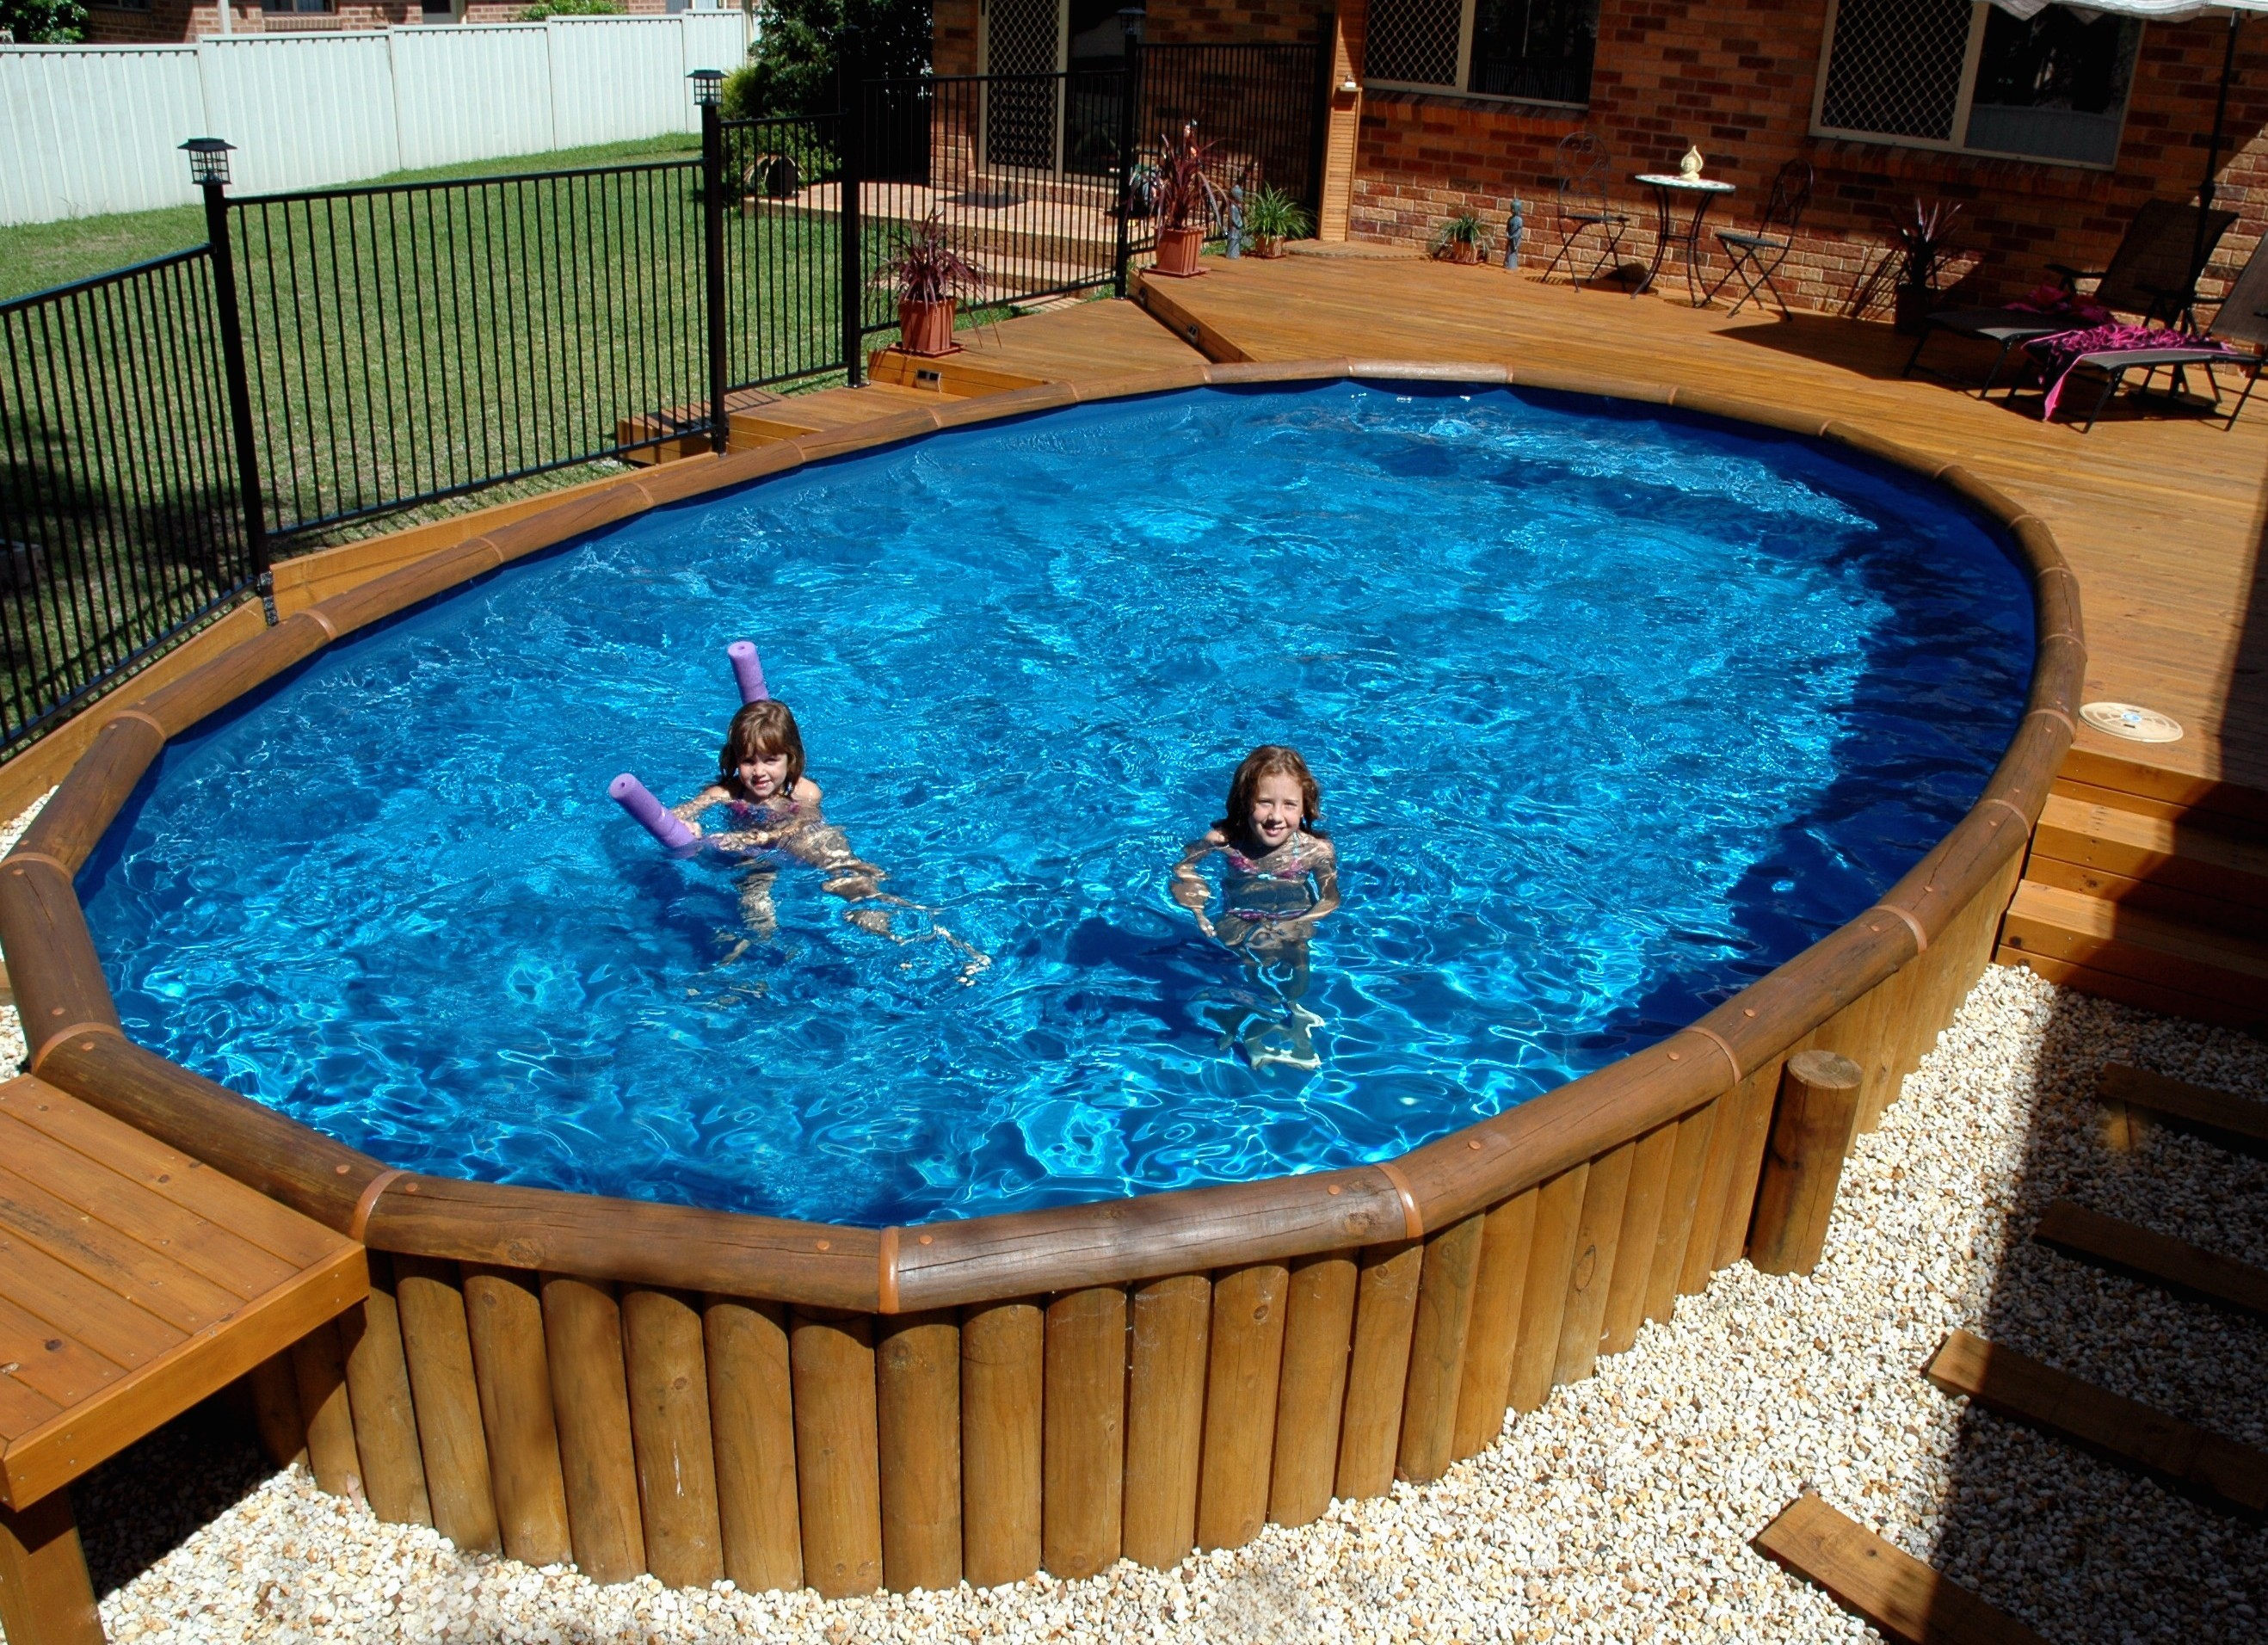 Inground Above Ground Pools | Half Inground Pools | Semi Inground Pool Ideas